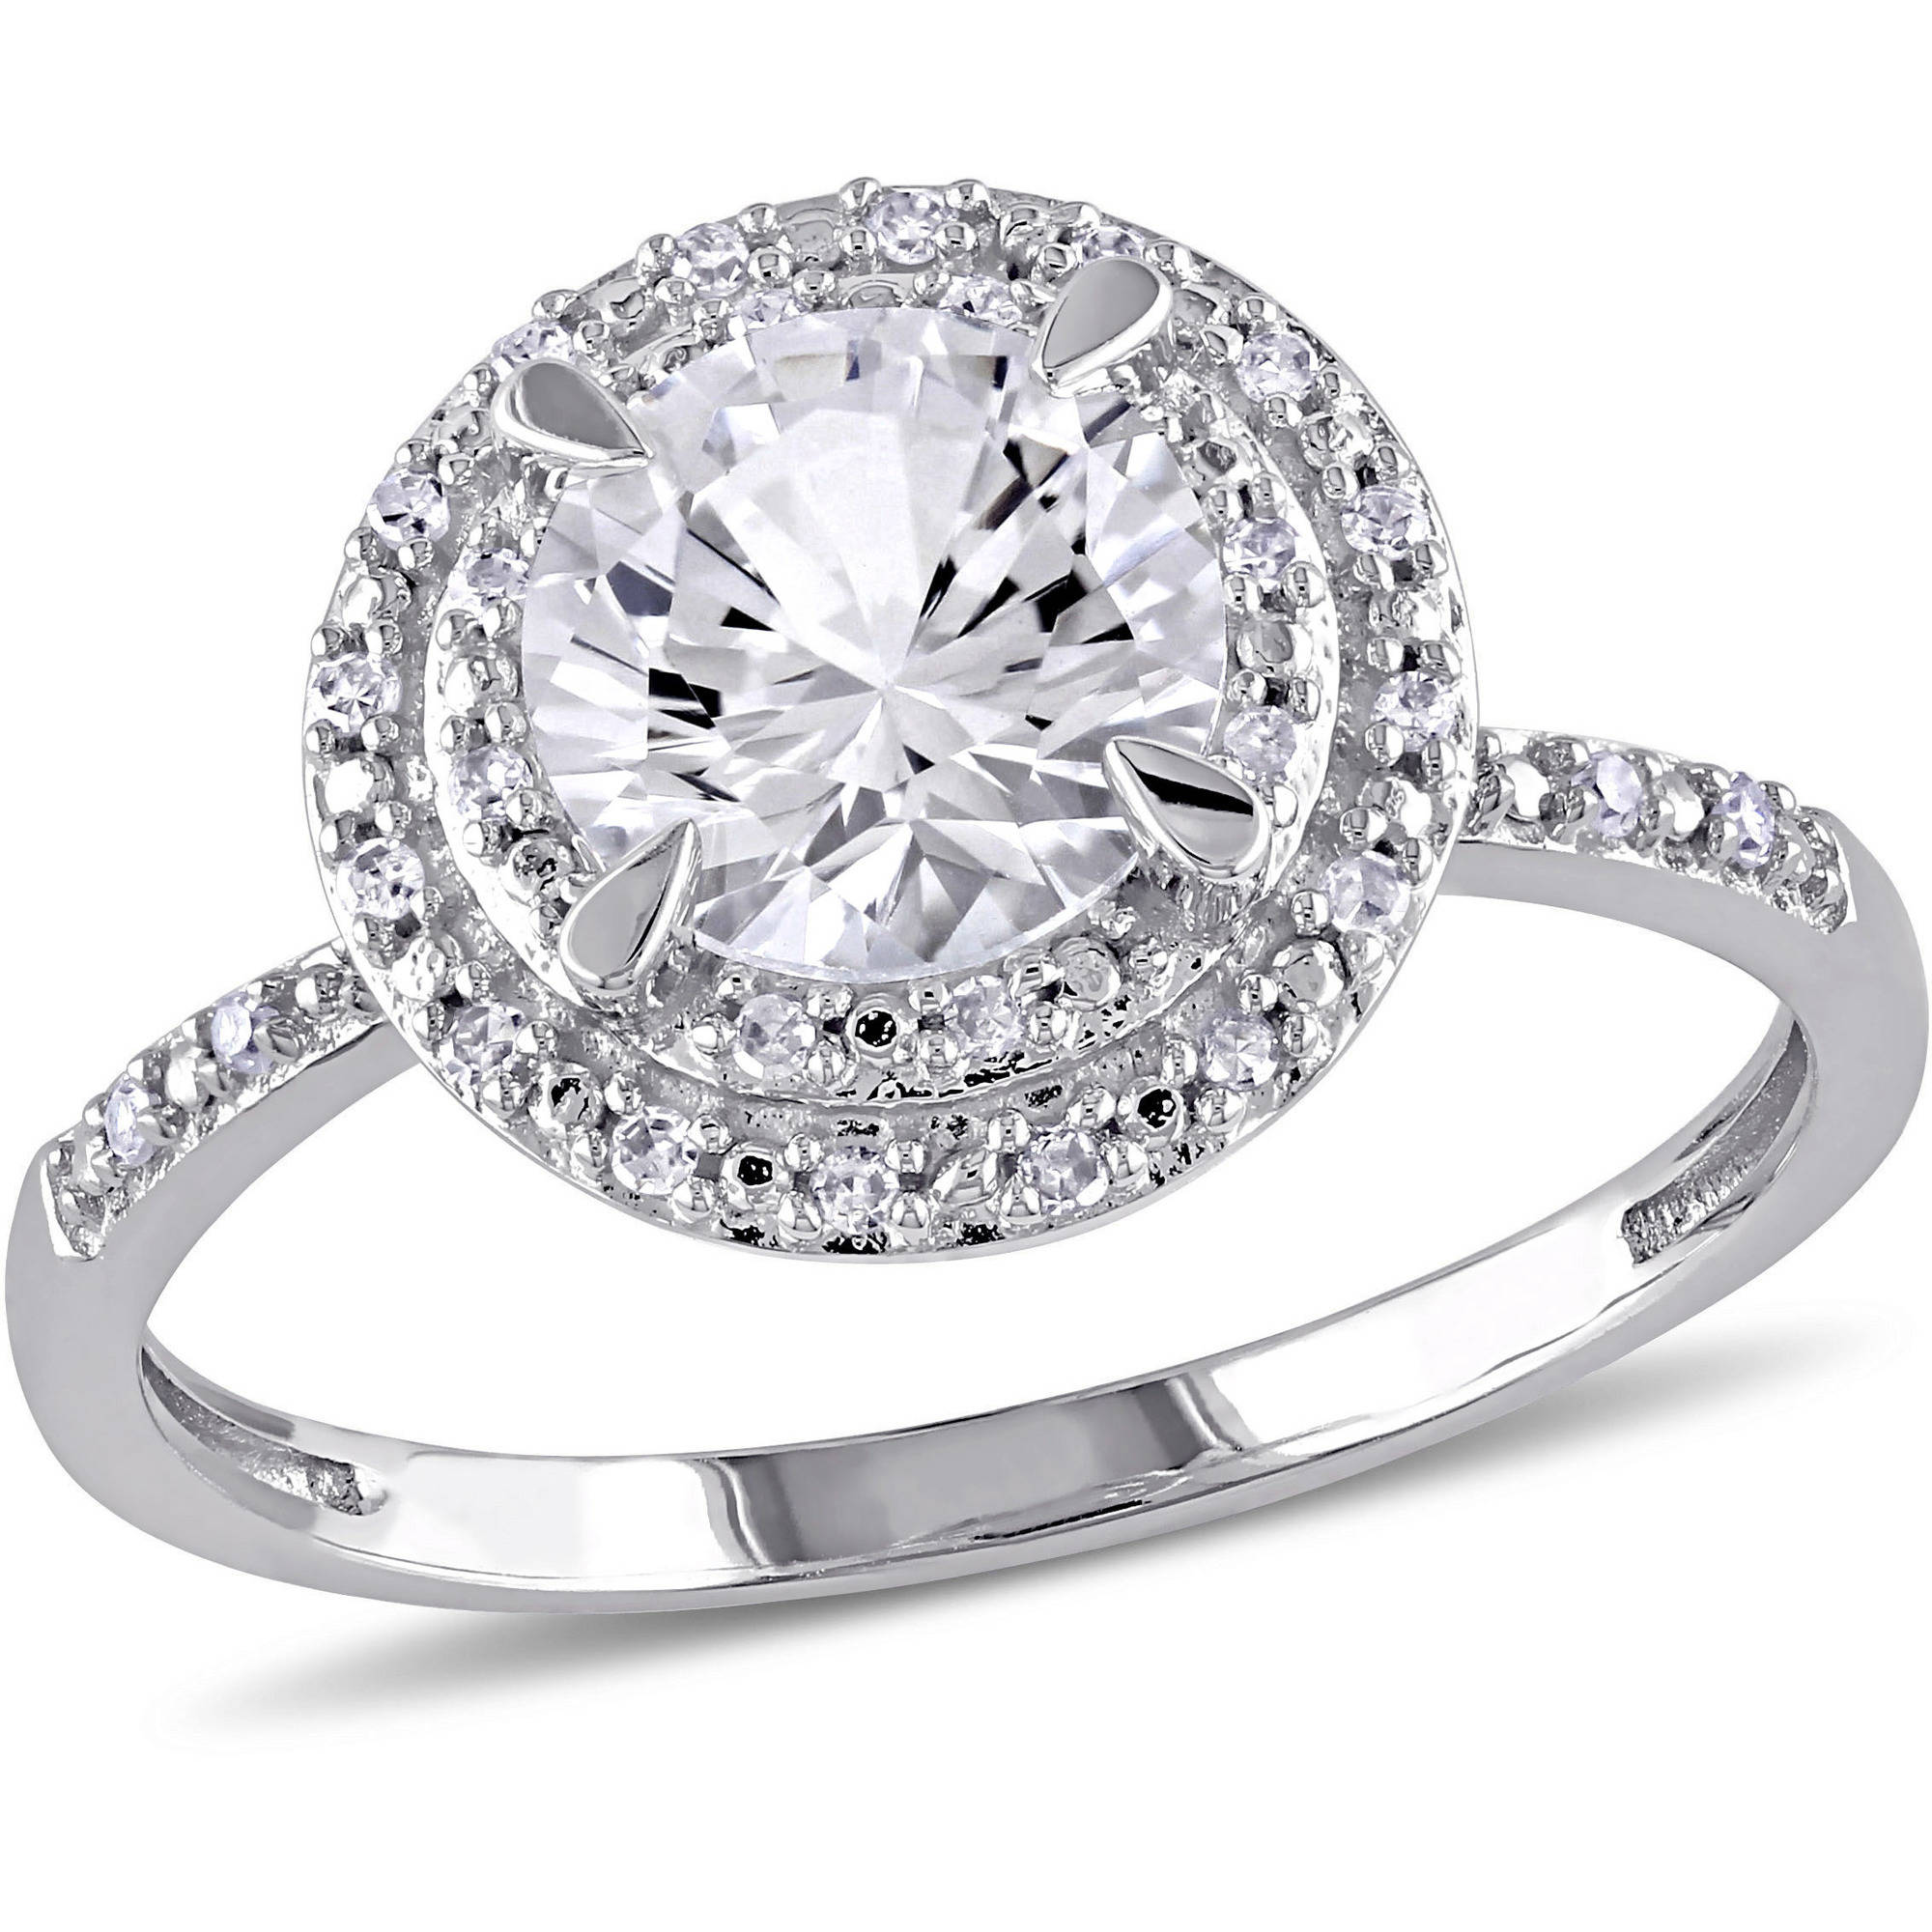 photos diamond ring see careys carat news carey courtesy rosado stylish img side a mariah wilfredo of engagement angle s